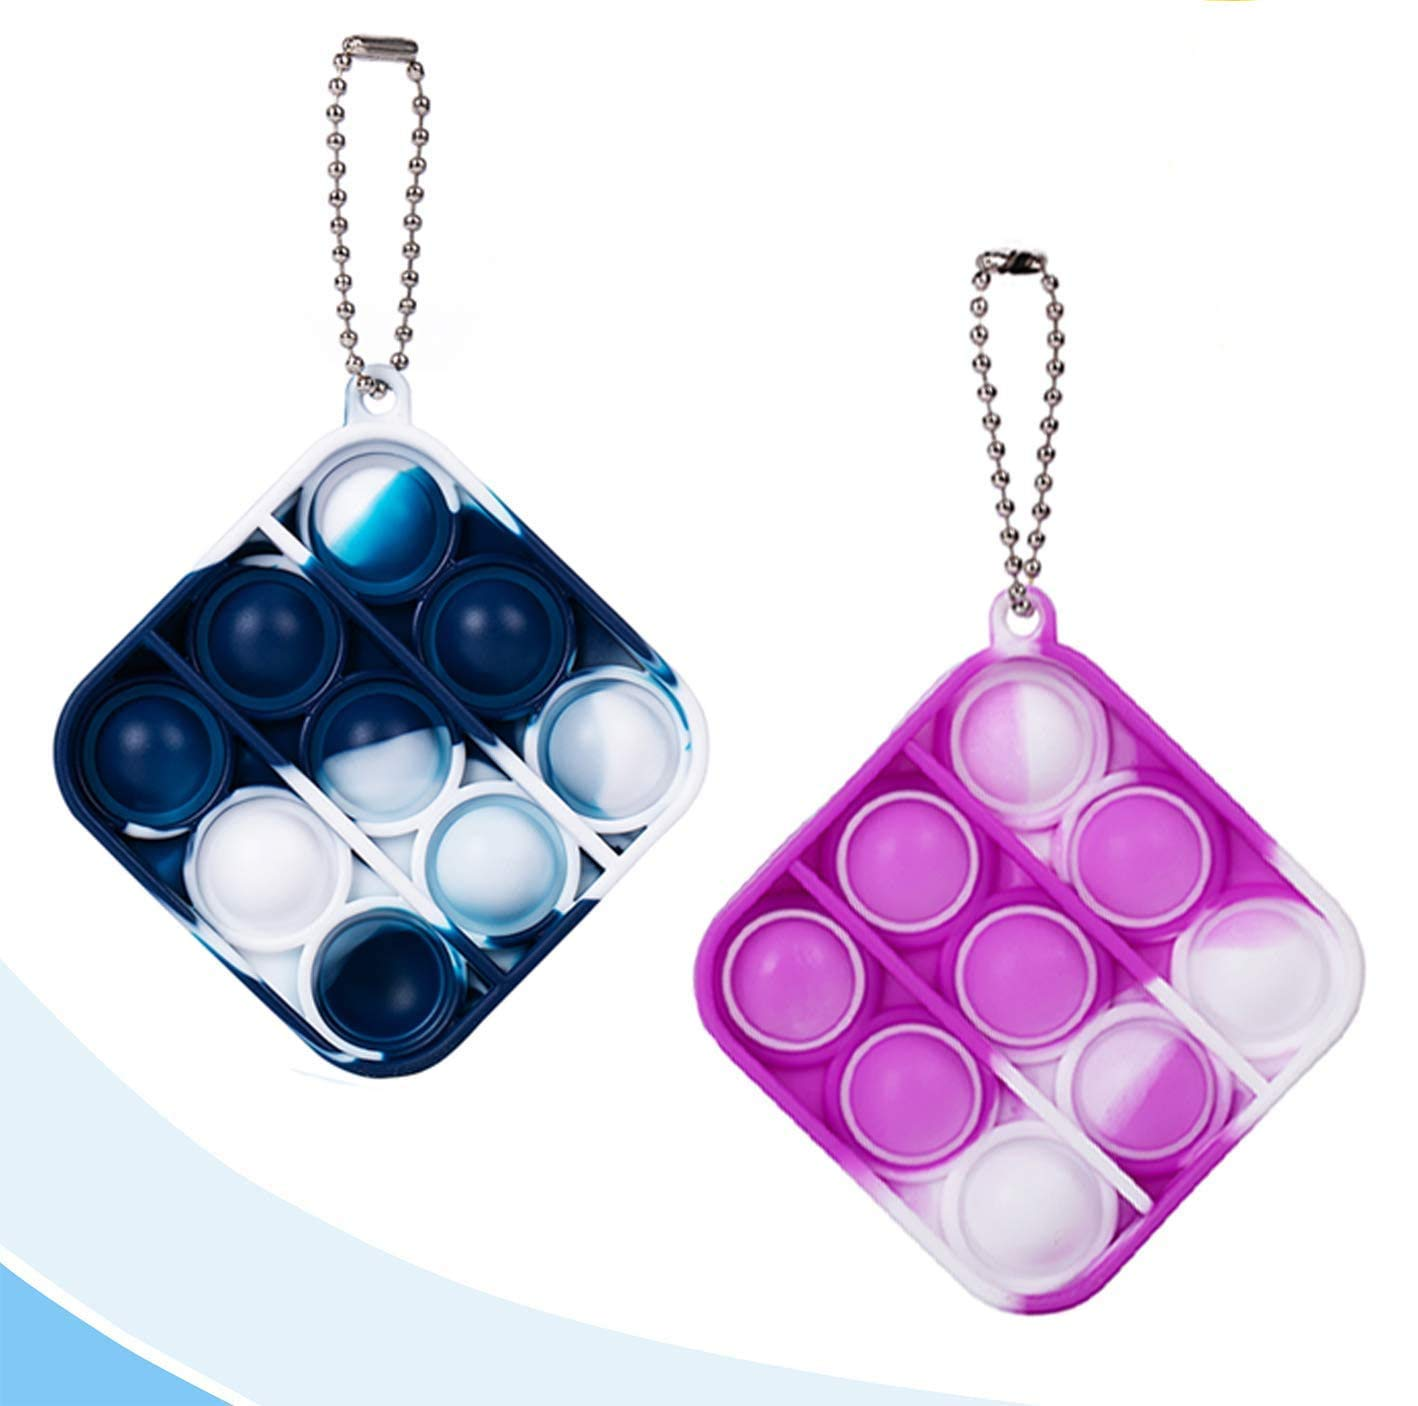 2 Pcs Simple Dimple Fidget Toy Mini Stress Relief Hand Toys Keychain Toy Bubble Wrap Pop Anxiety Stress Reliever Office Desk Toy for Kids Adults Purple Blue